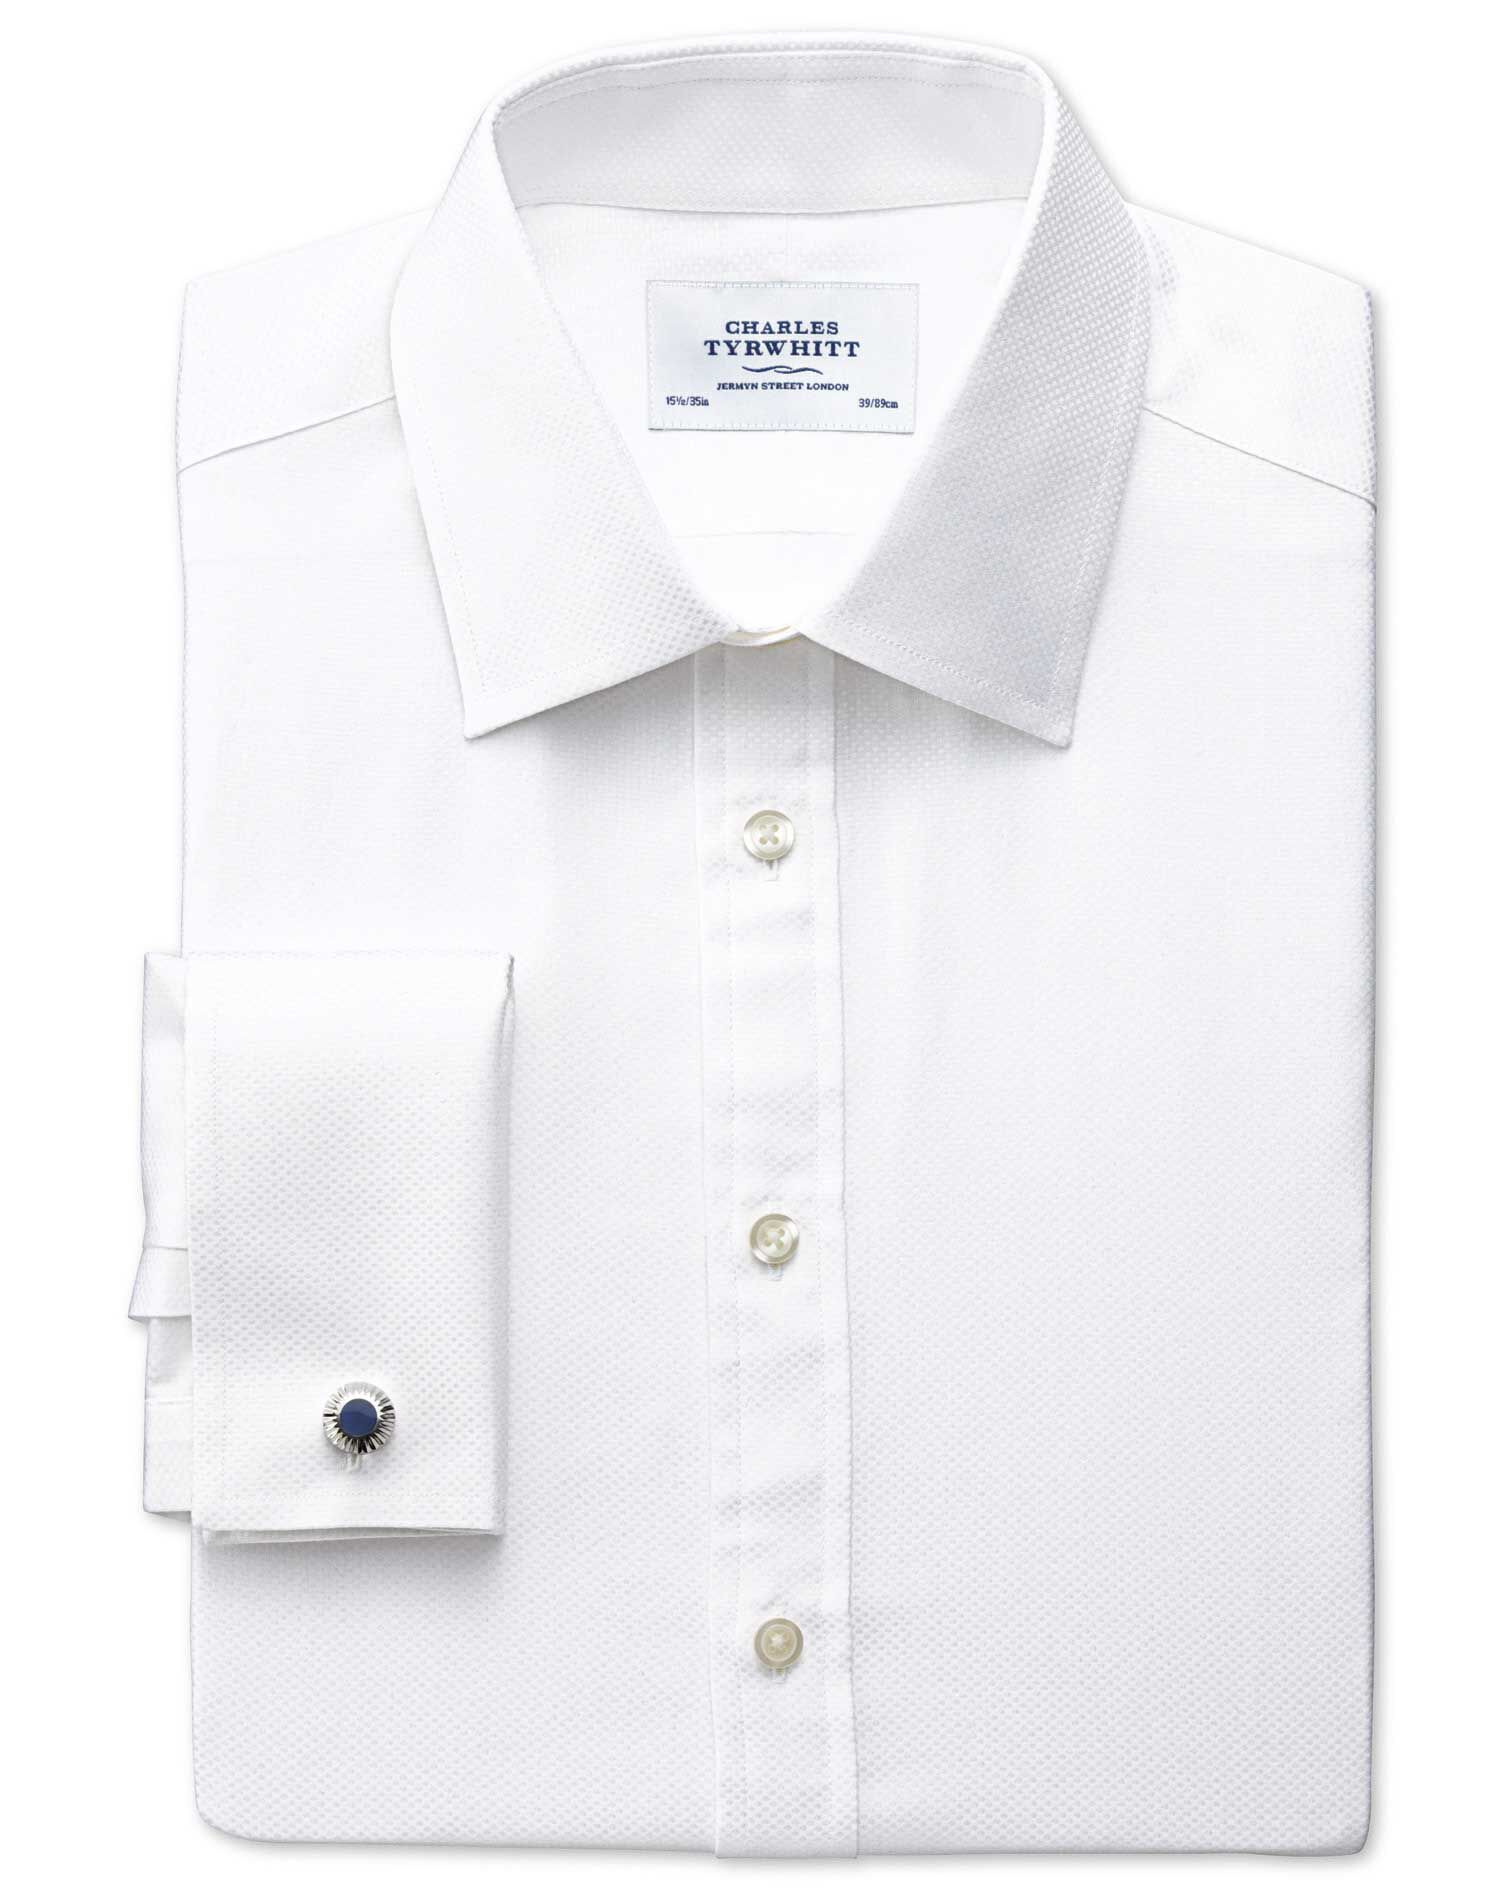 Classic Fit Pima Cotton Double-Faced White Formal Shirt Single Cuff Size 15.5/37 by Charles Tyrwhitt